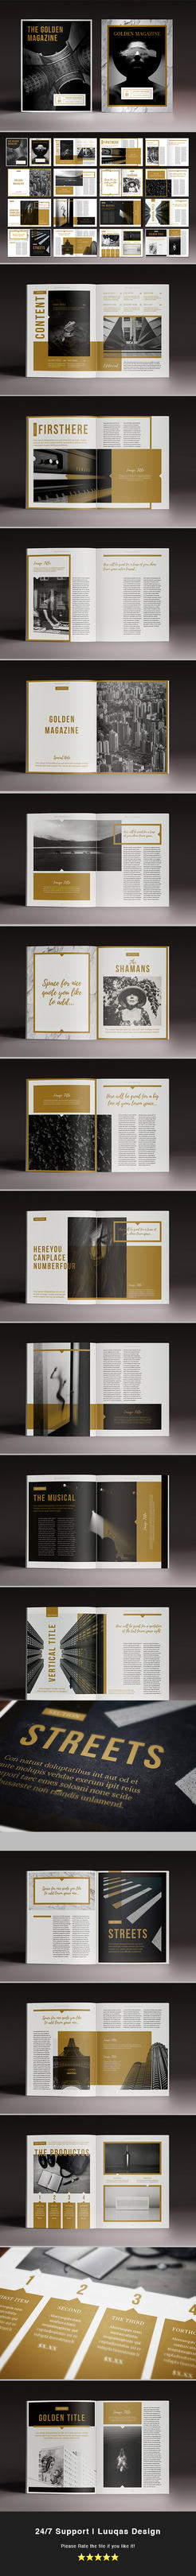 The Golden Magazine Template by luuqas